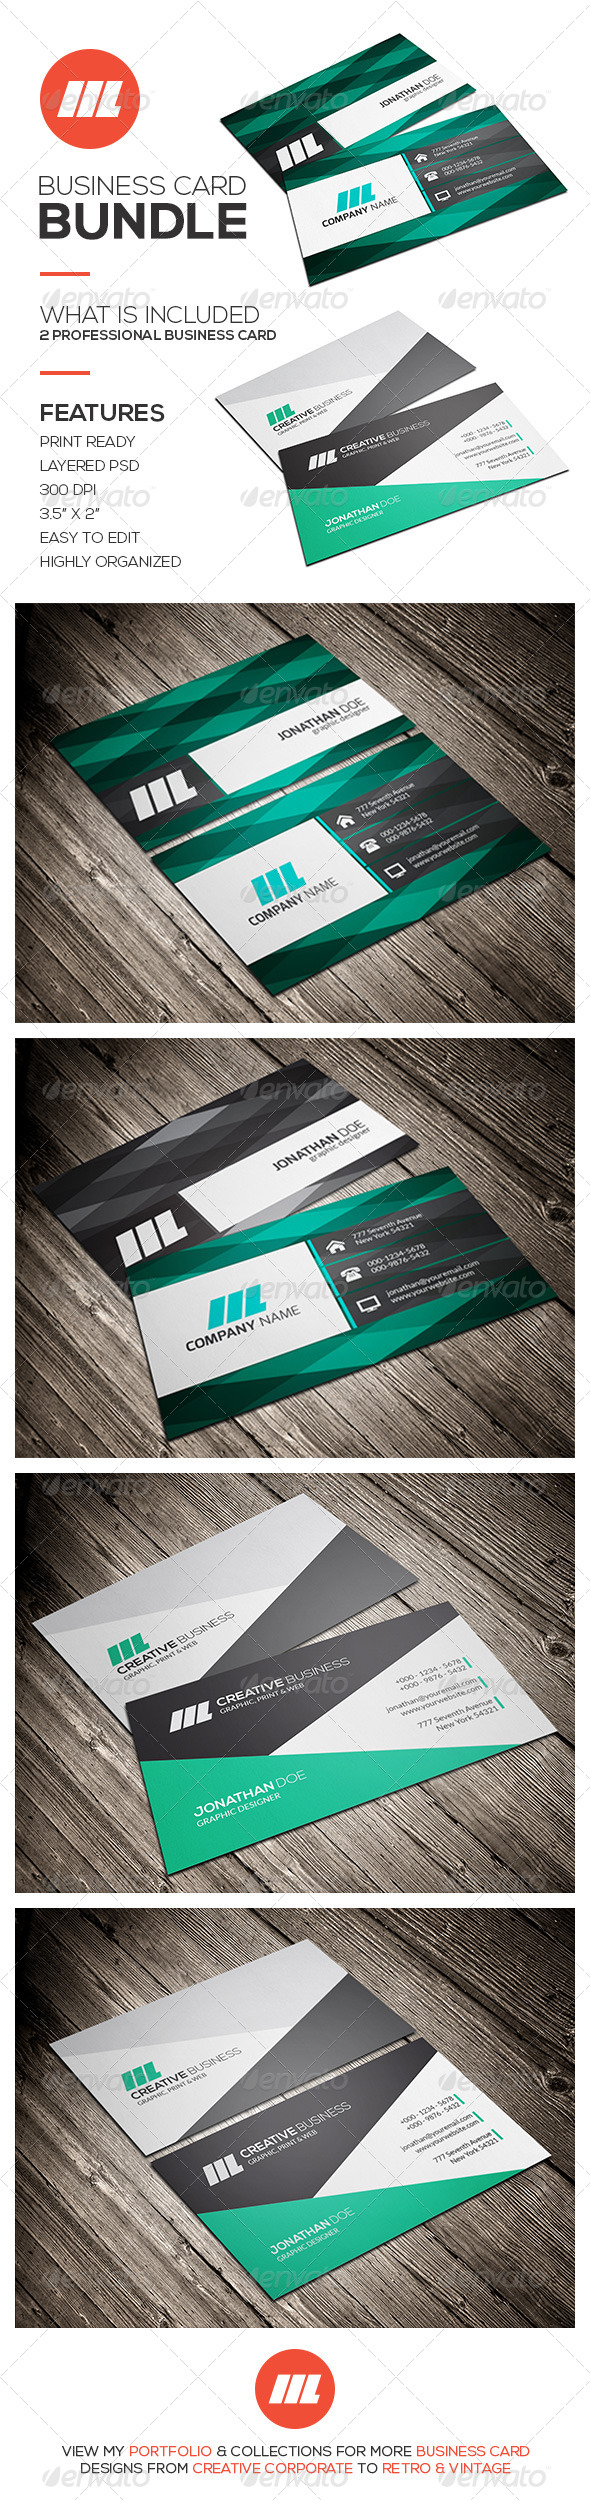 GraphicRiver Business Card Bundle Vol 01 8603943